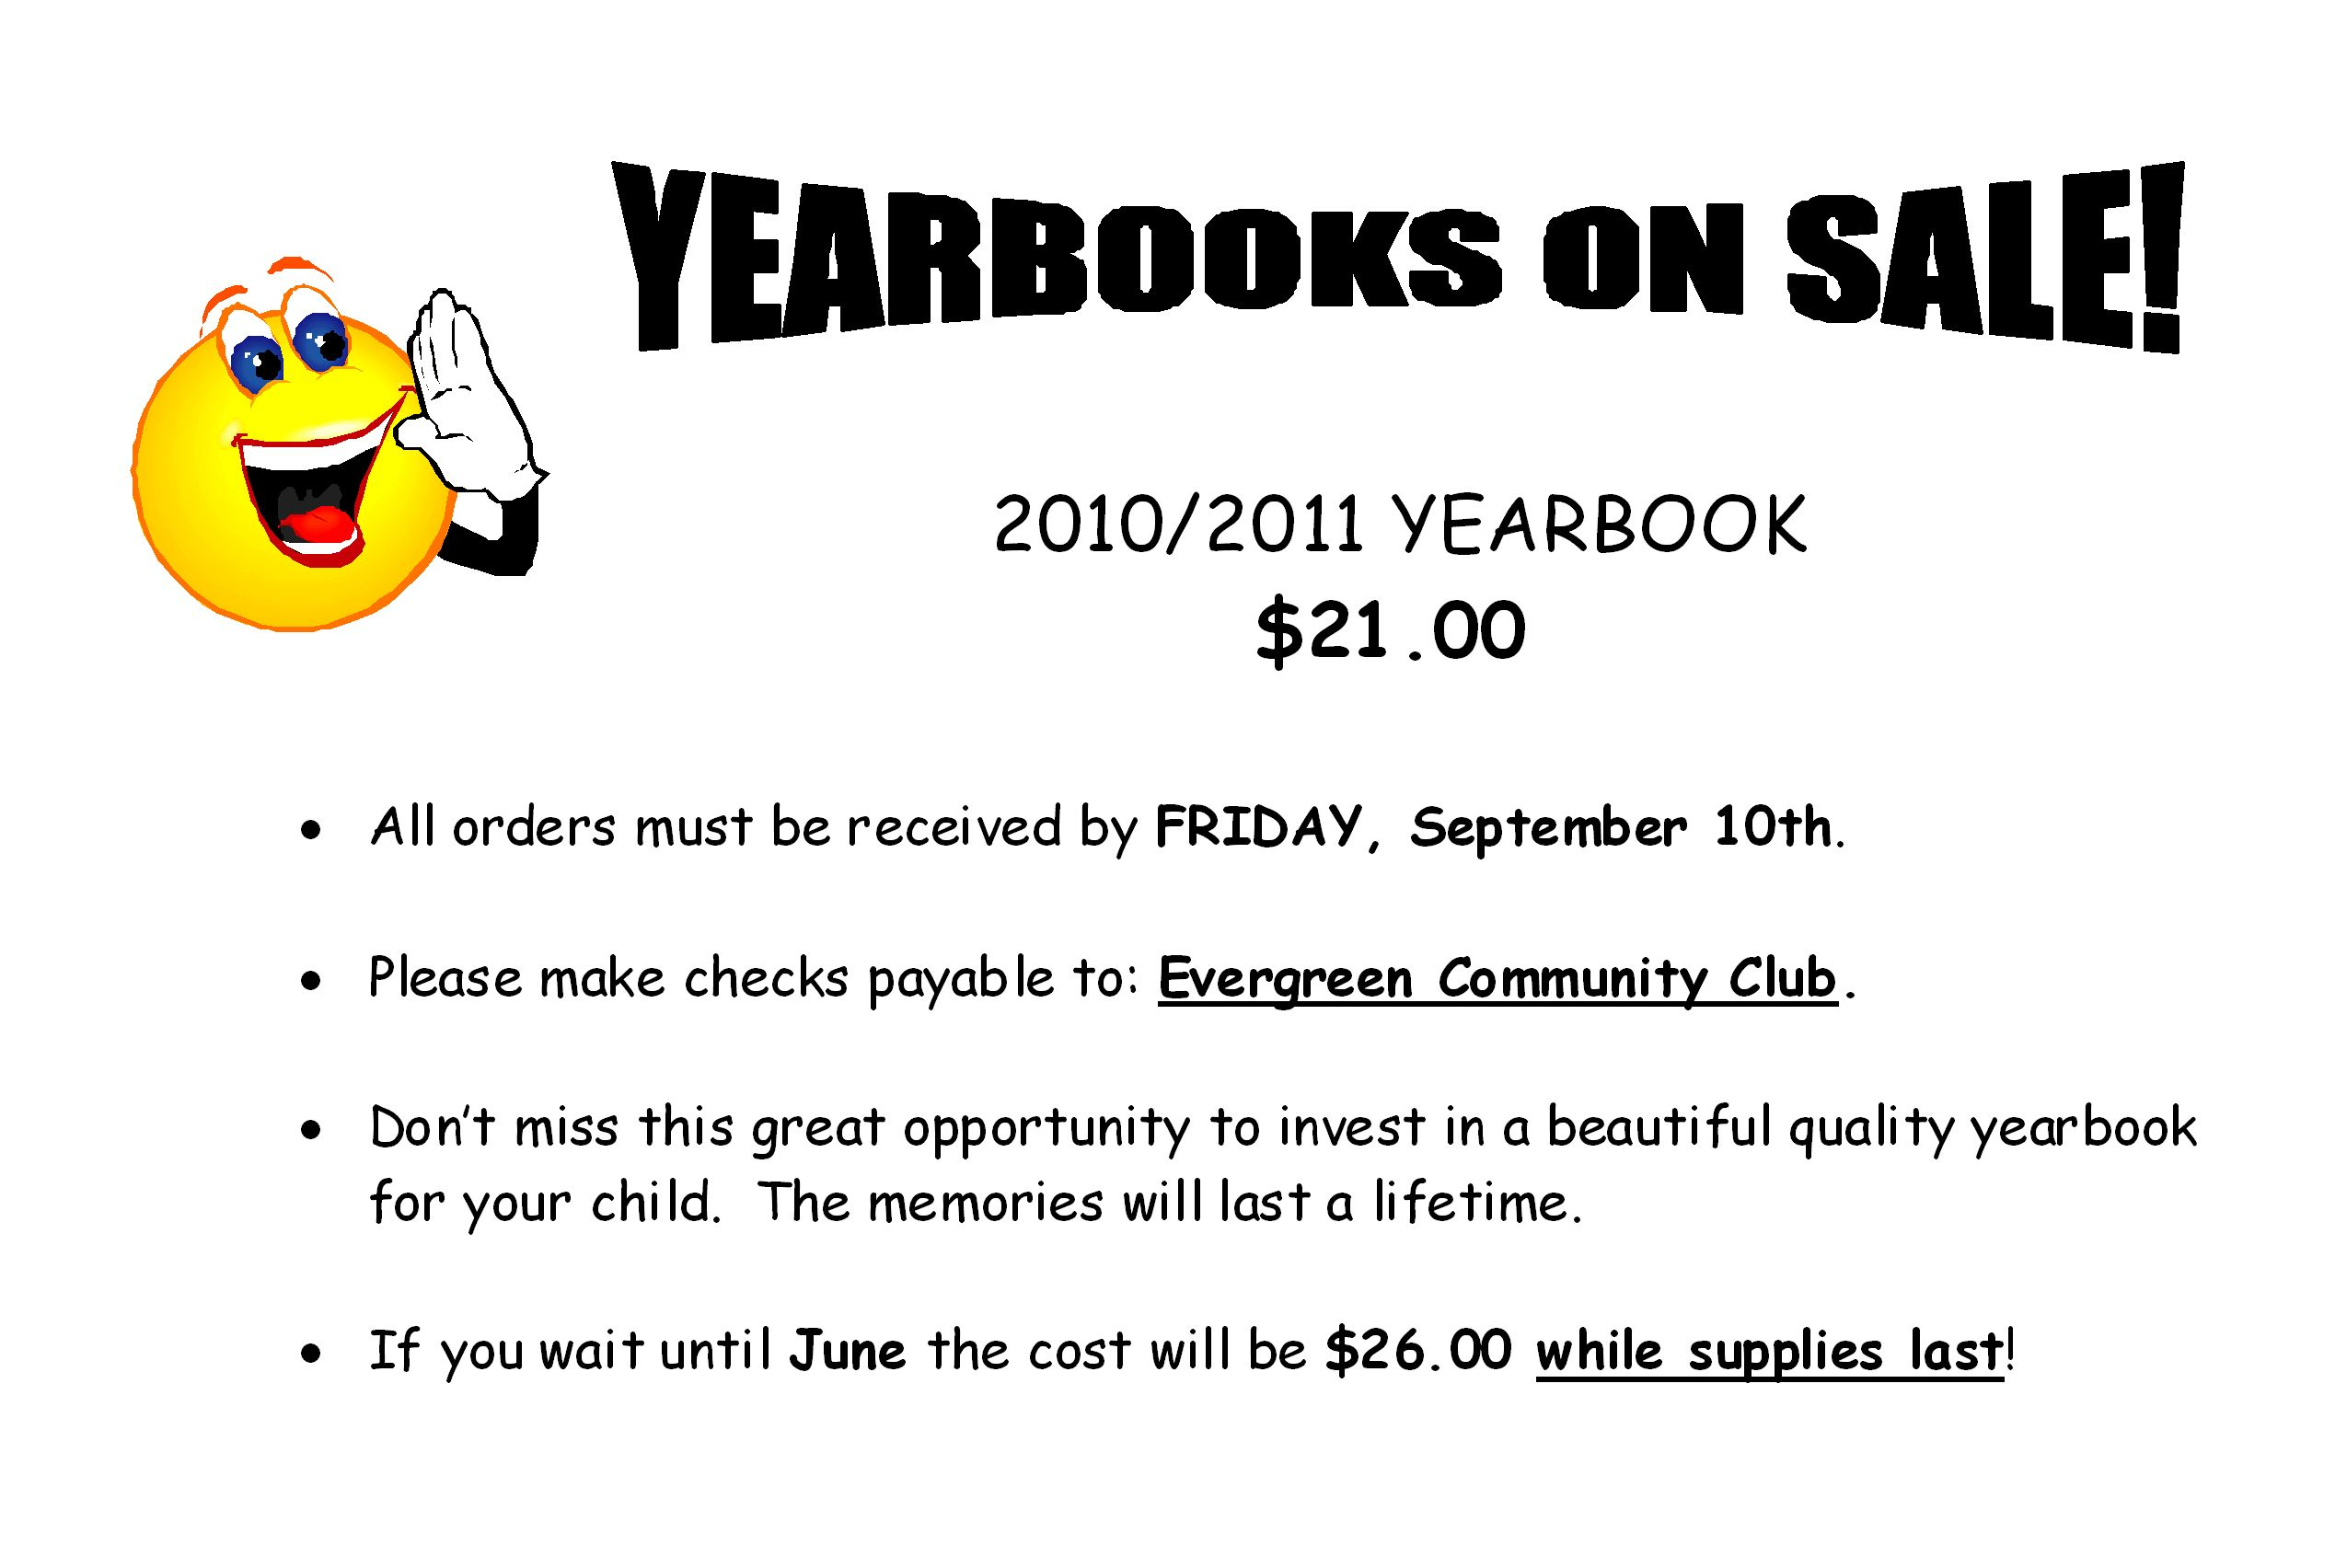 Funny Yearbook Posters: Http://www.evergreencommunityclub.com/wp-content/uploads